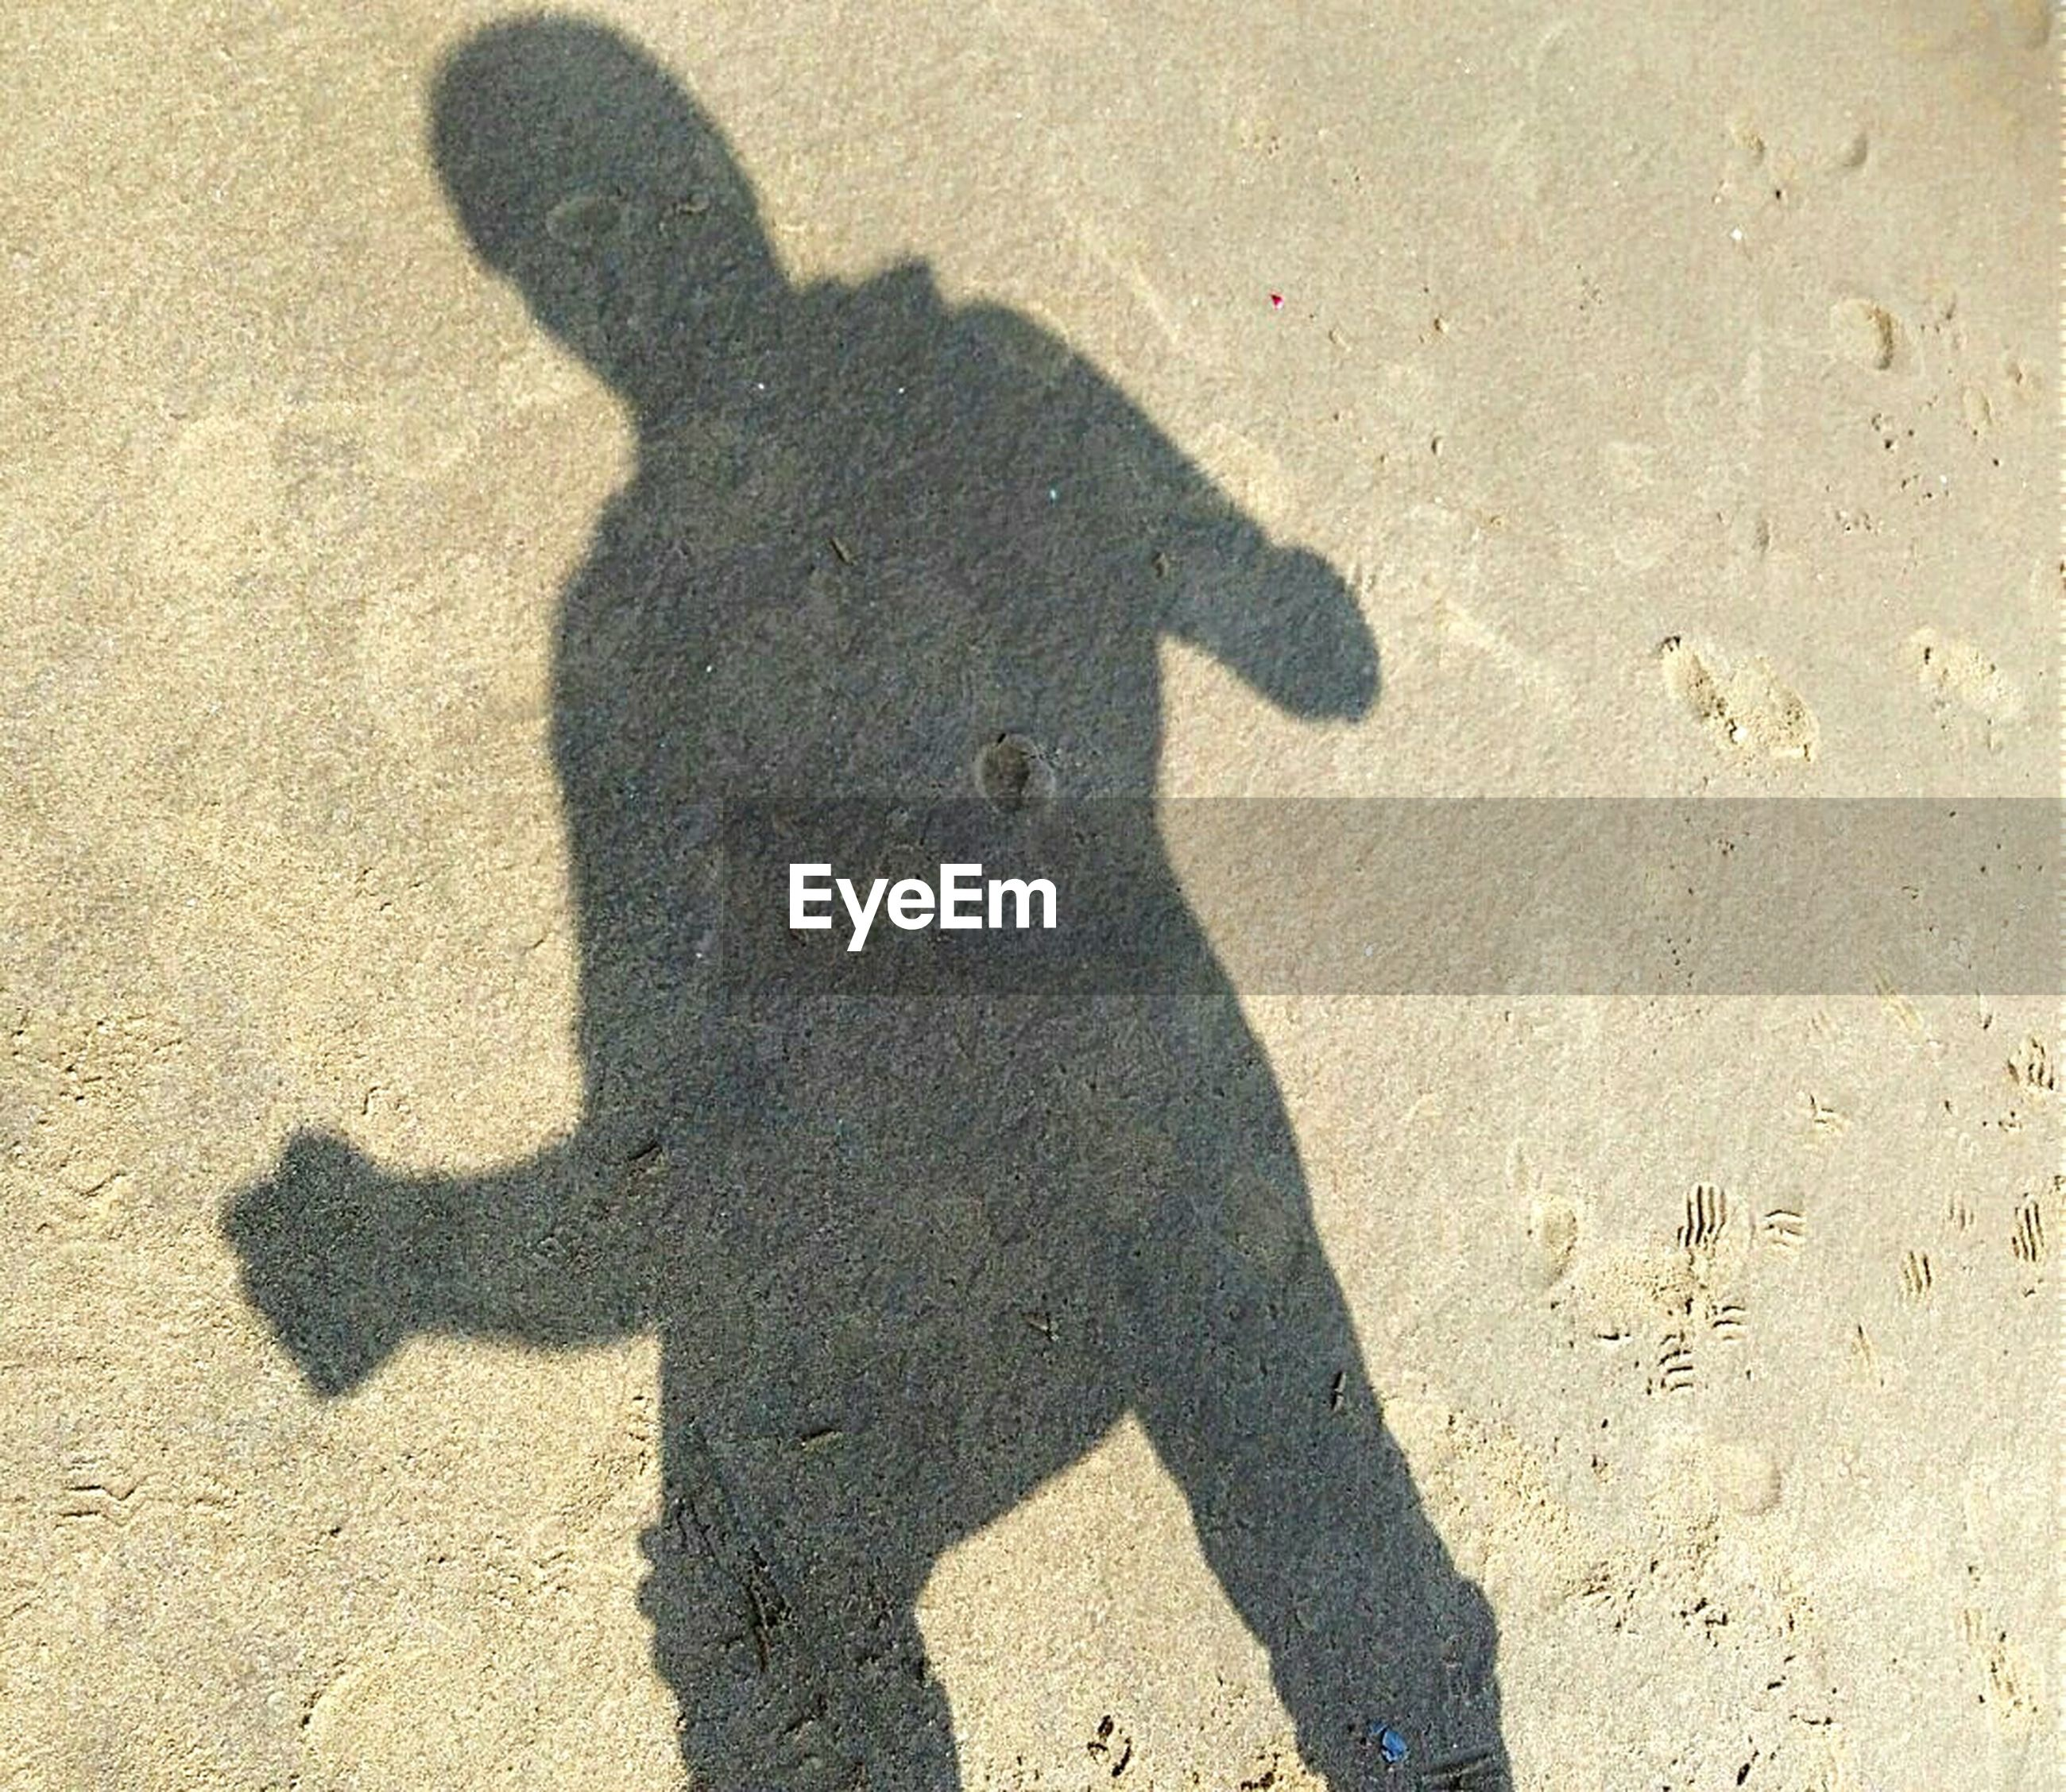 Shadow of man standing on sand at beach